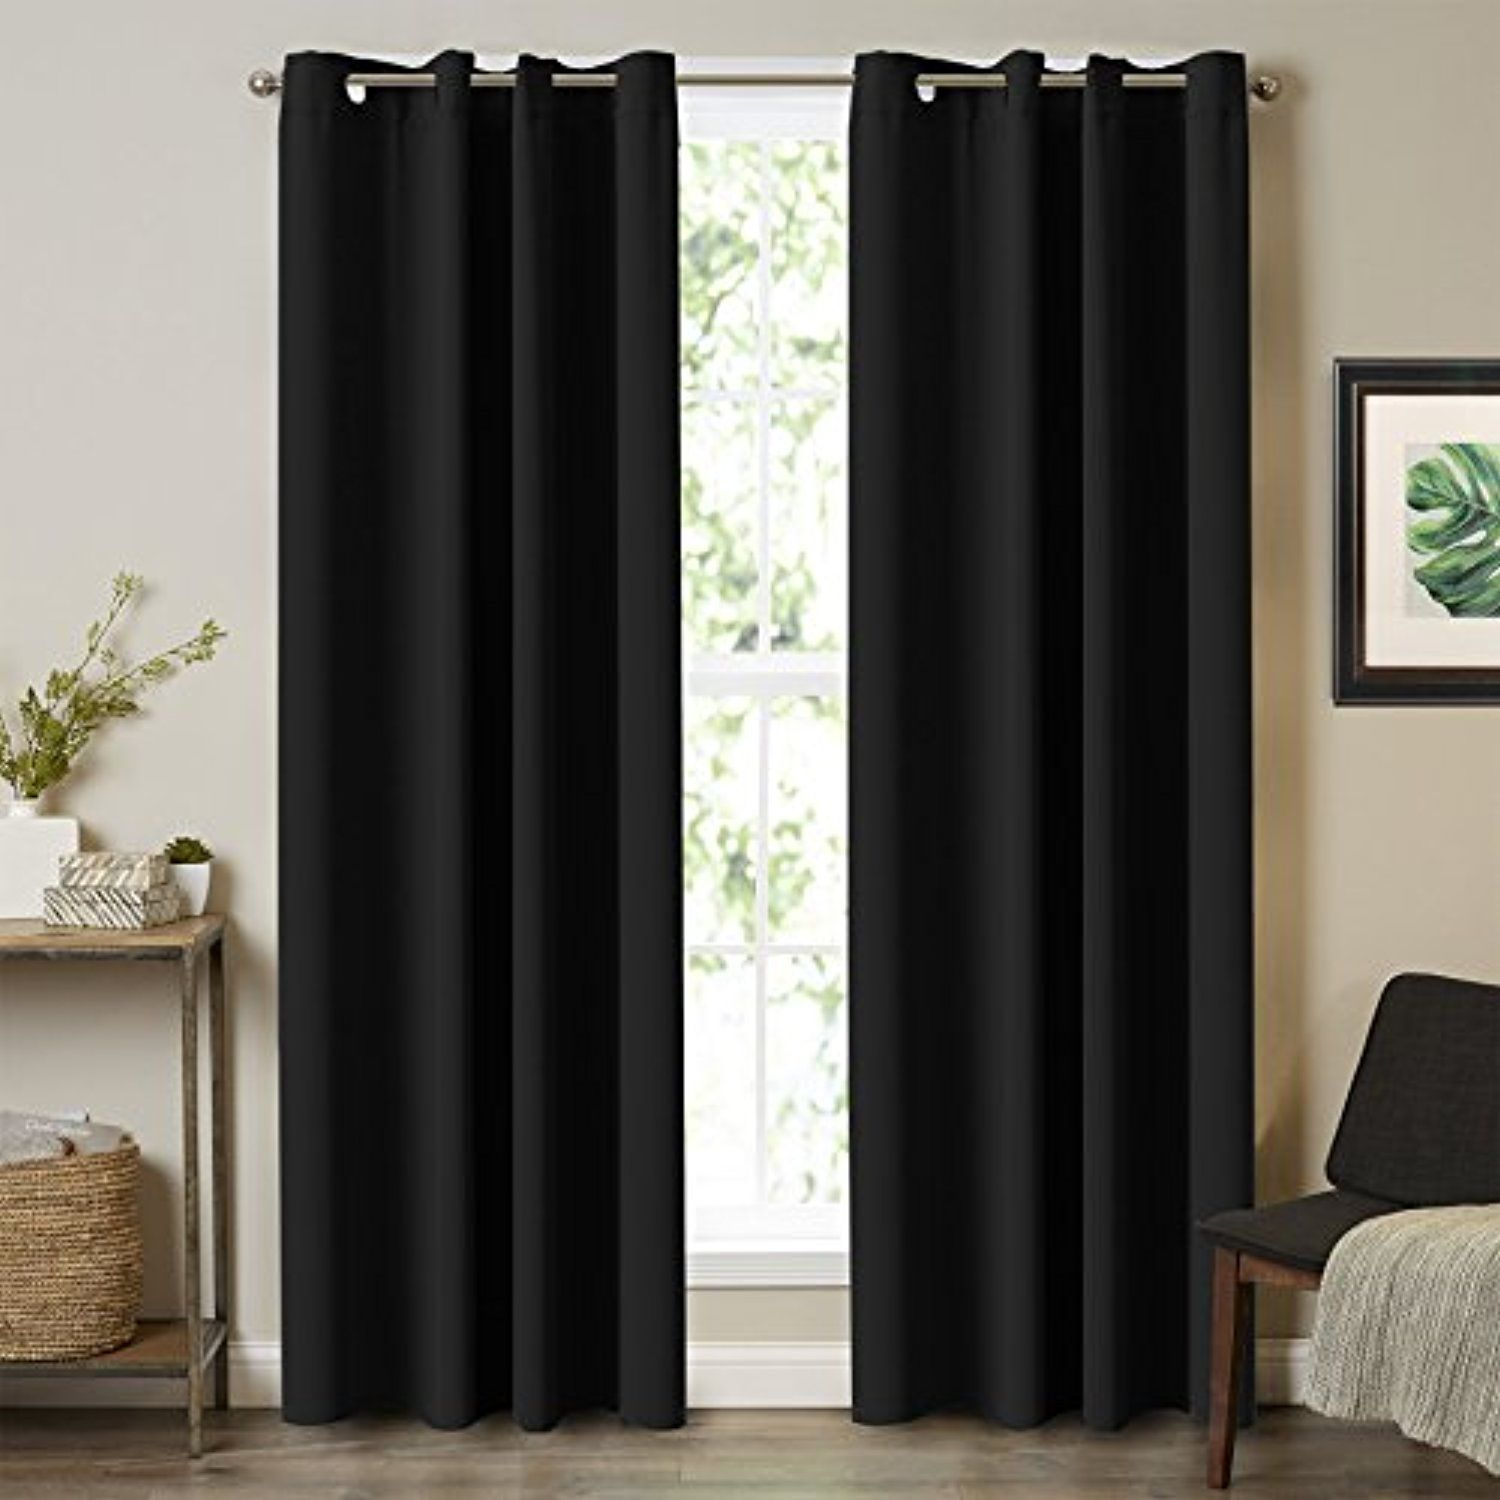 shower carnation products curtain fashions inc extra home long chelsea sc size wide large fabric ch curtains black fab white x